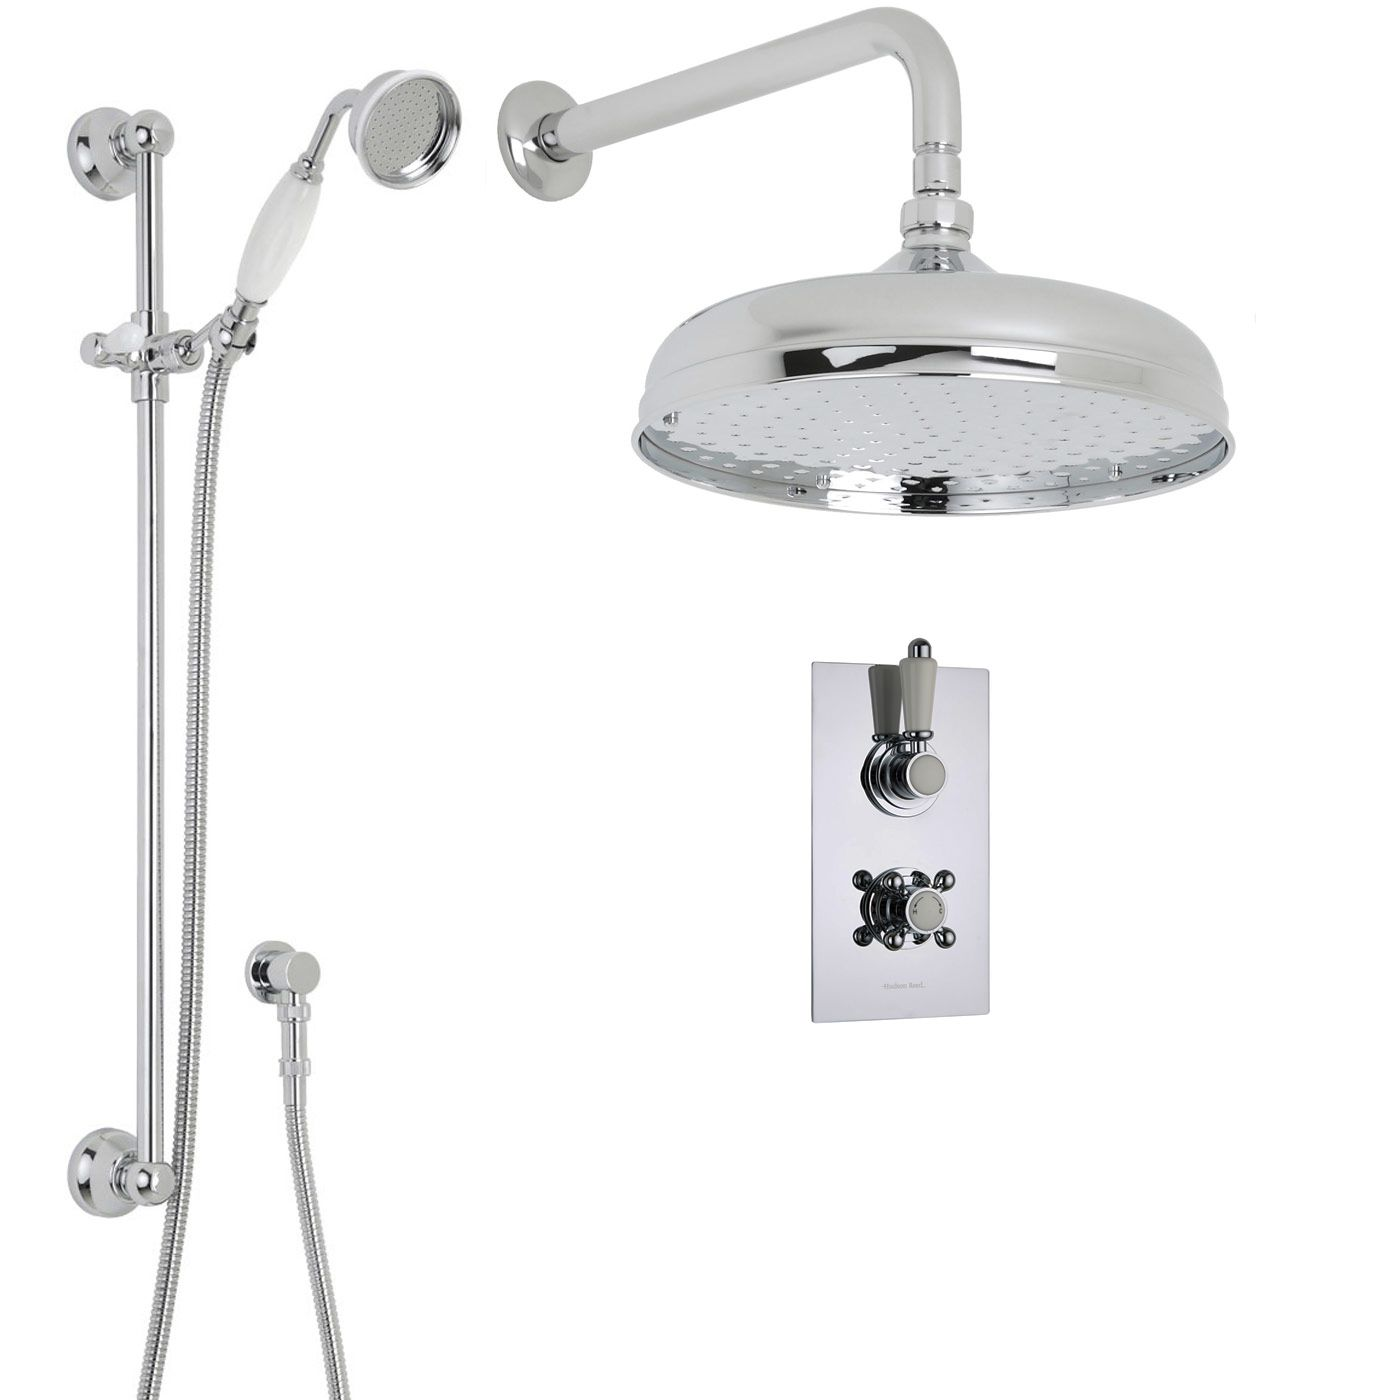 "Traditional Thermostatic 2 Outlet Shower System with 12"" Ceiling Apron Head & Handshower"